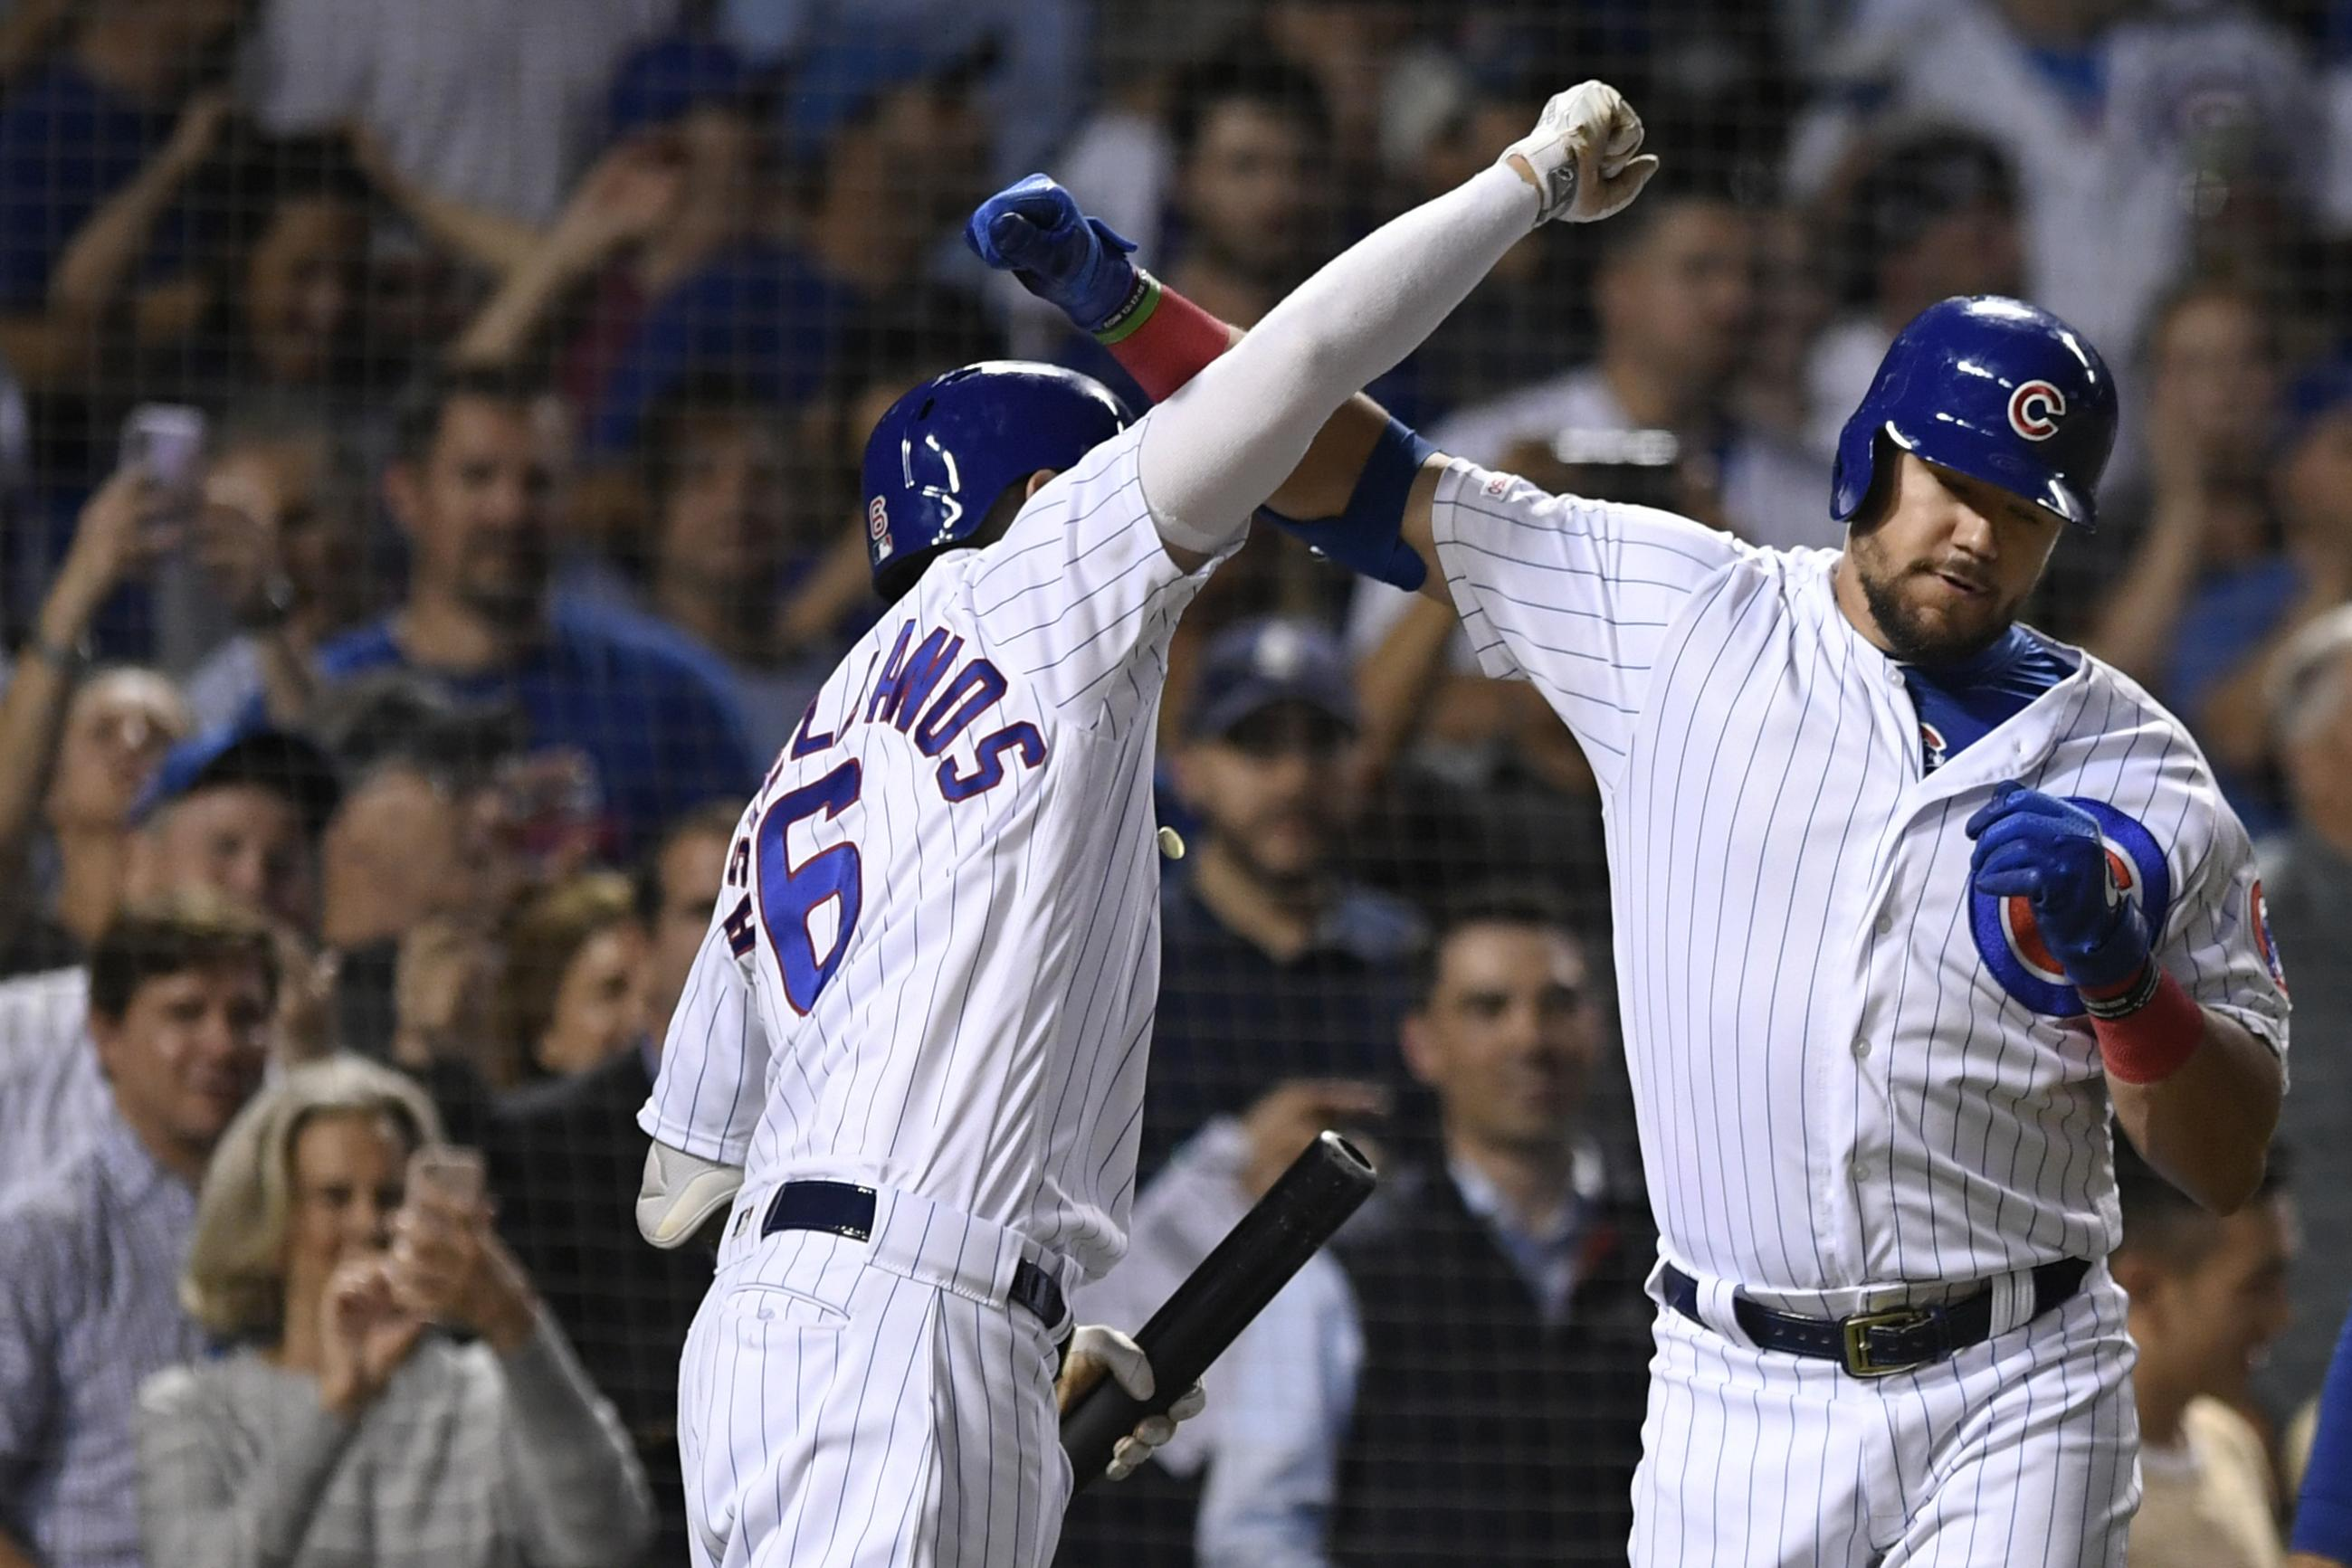 Felix departs after just three innings as Cubs belt Mariners